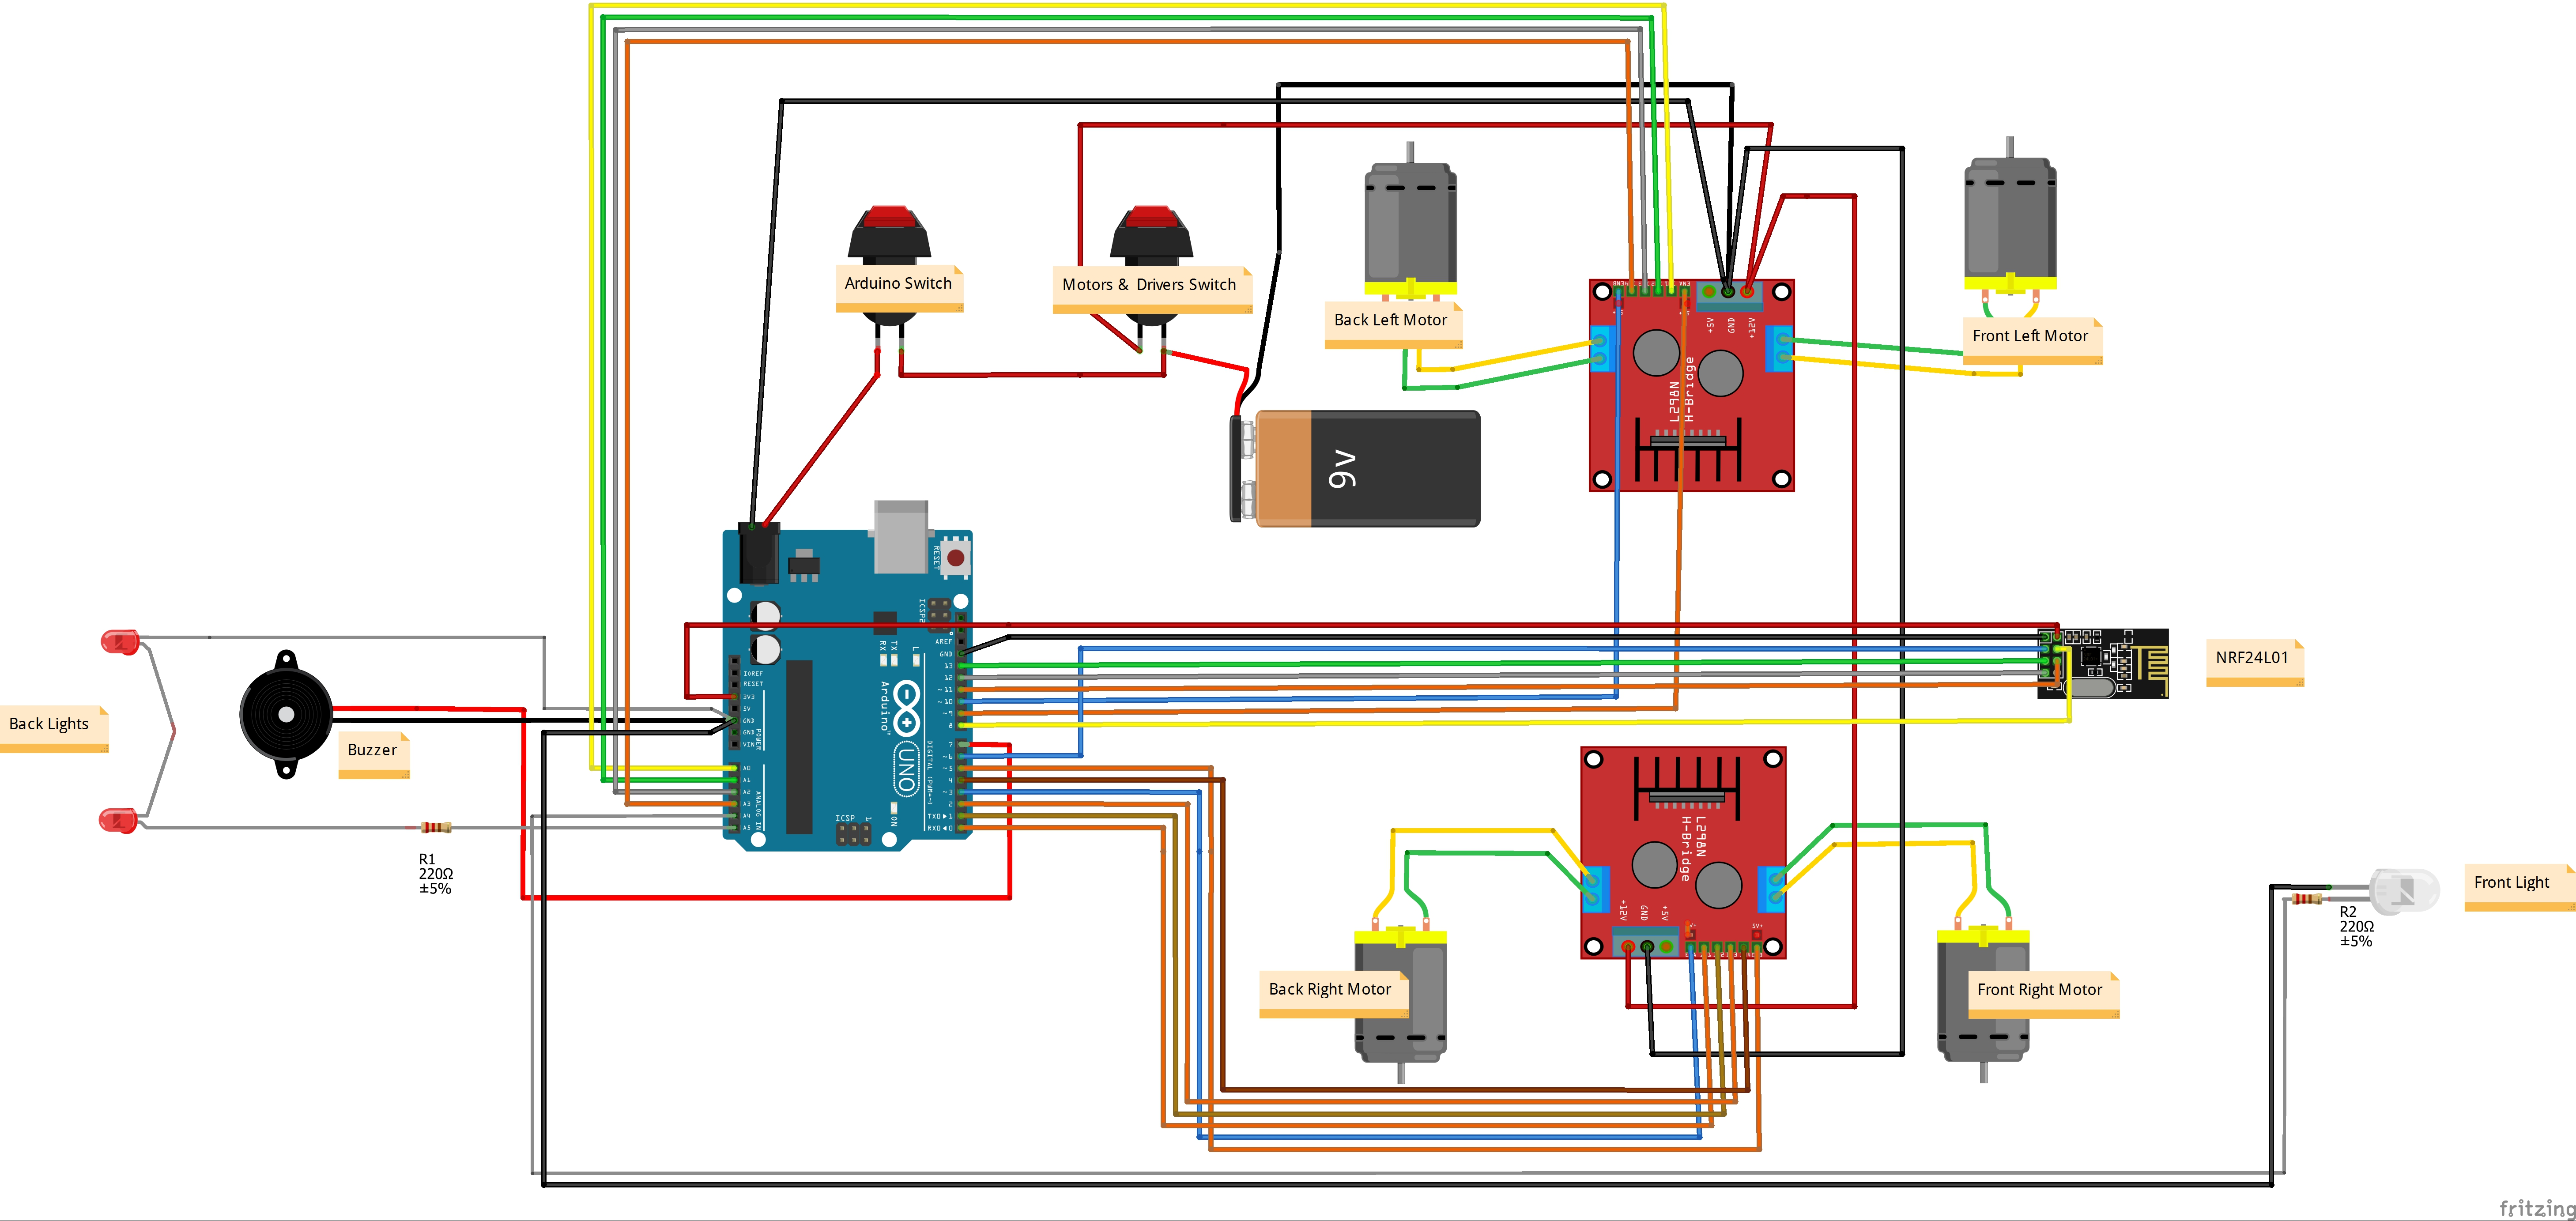 hight resolution of rc car wiring diagram wiring diagrams scematic solidworks rc car of rc car wiring schematic